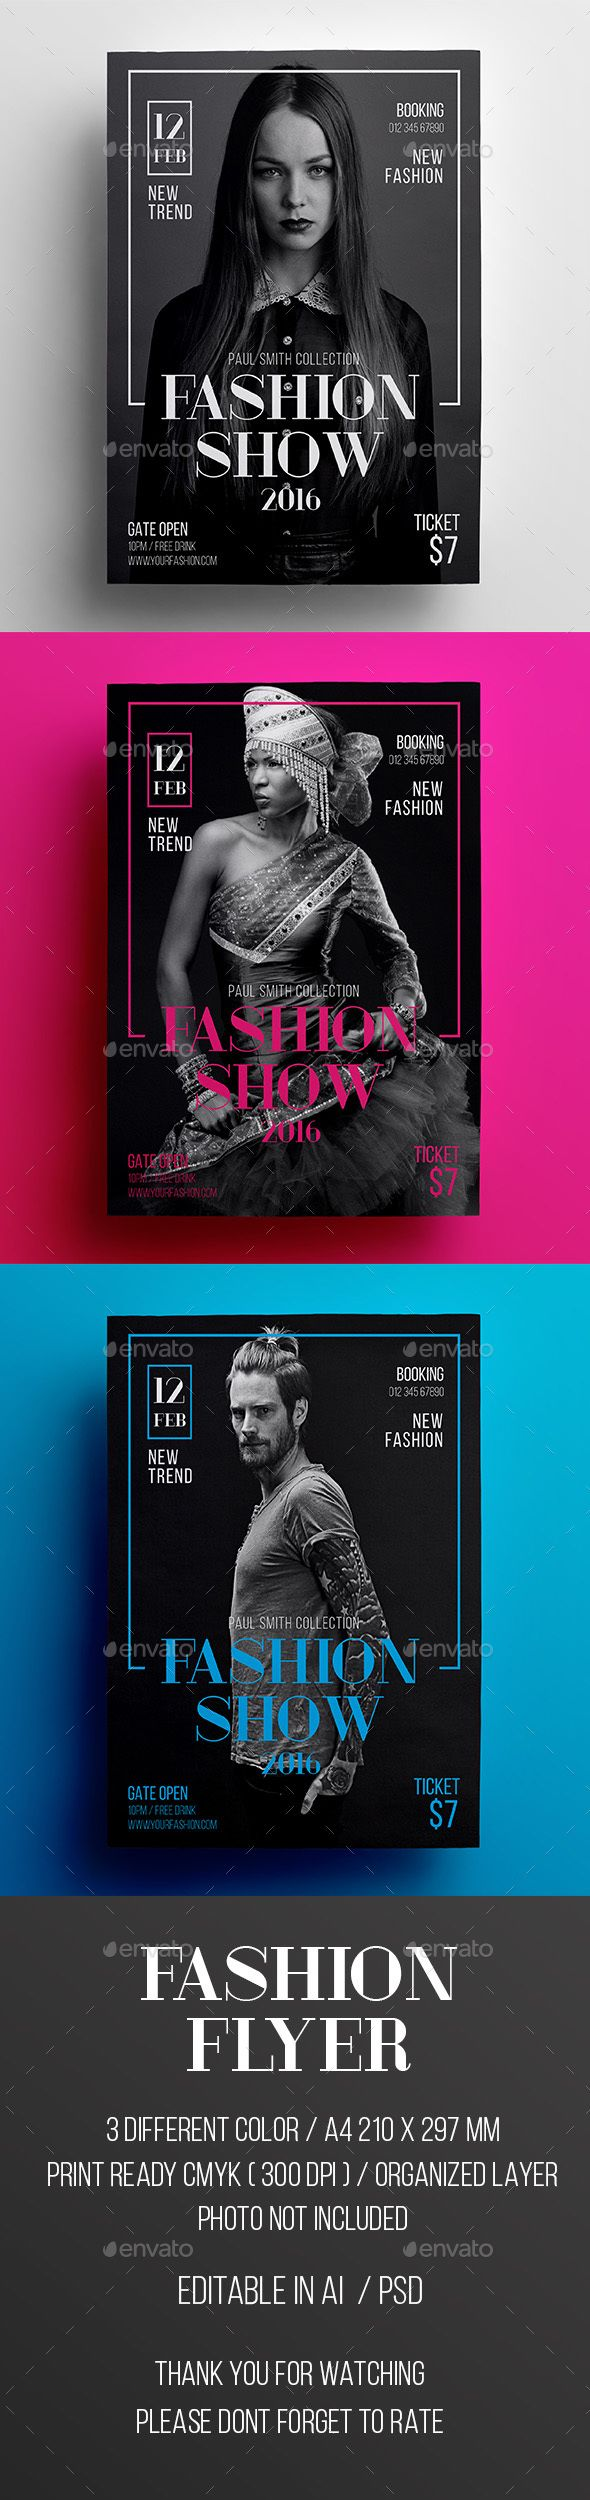 17 best ideas about templates for flyers bake fashion show flyer